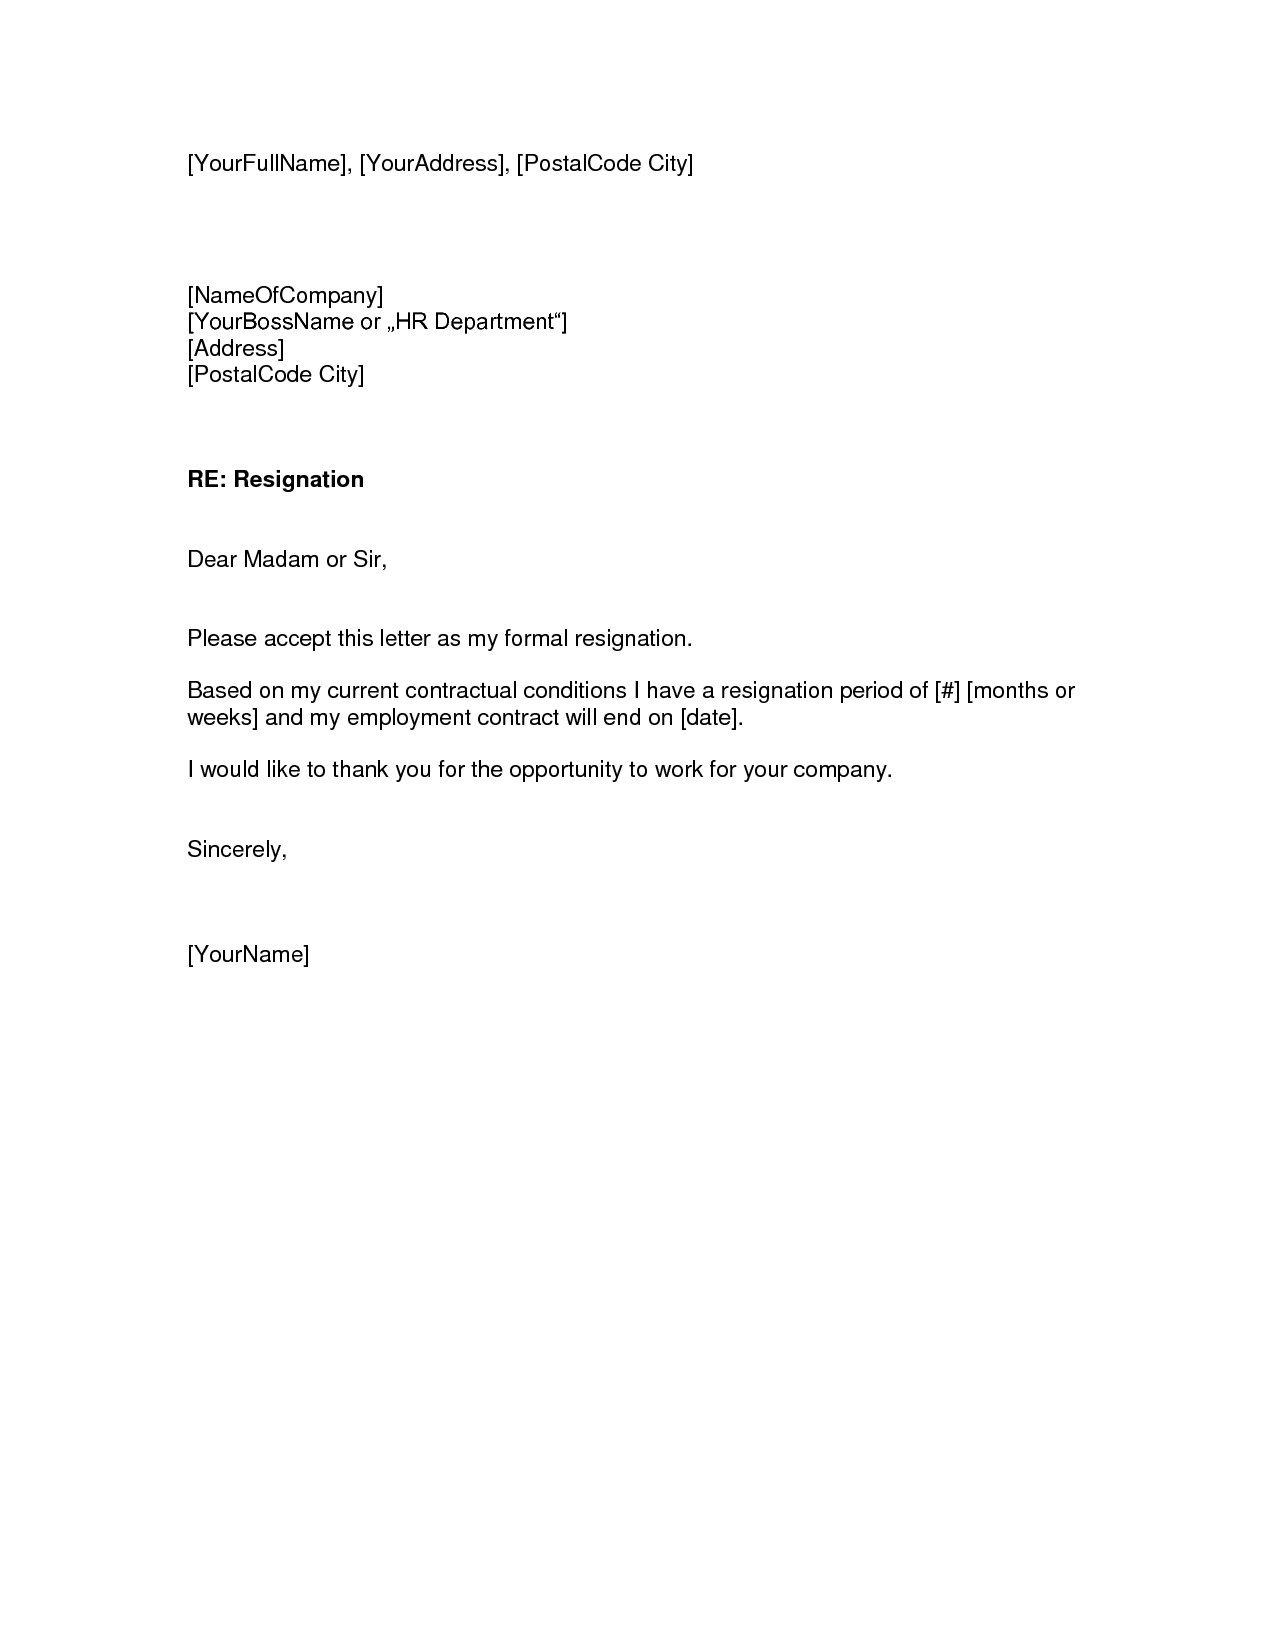 sample resignation letter gresremmyvolunteer letter template application letter sample - Template Letters Of Resignation